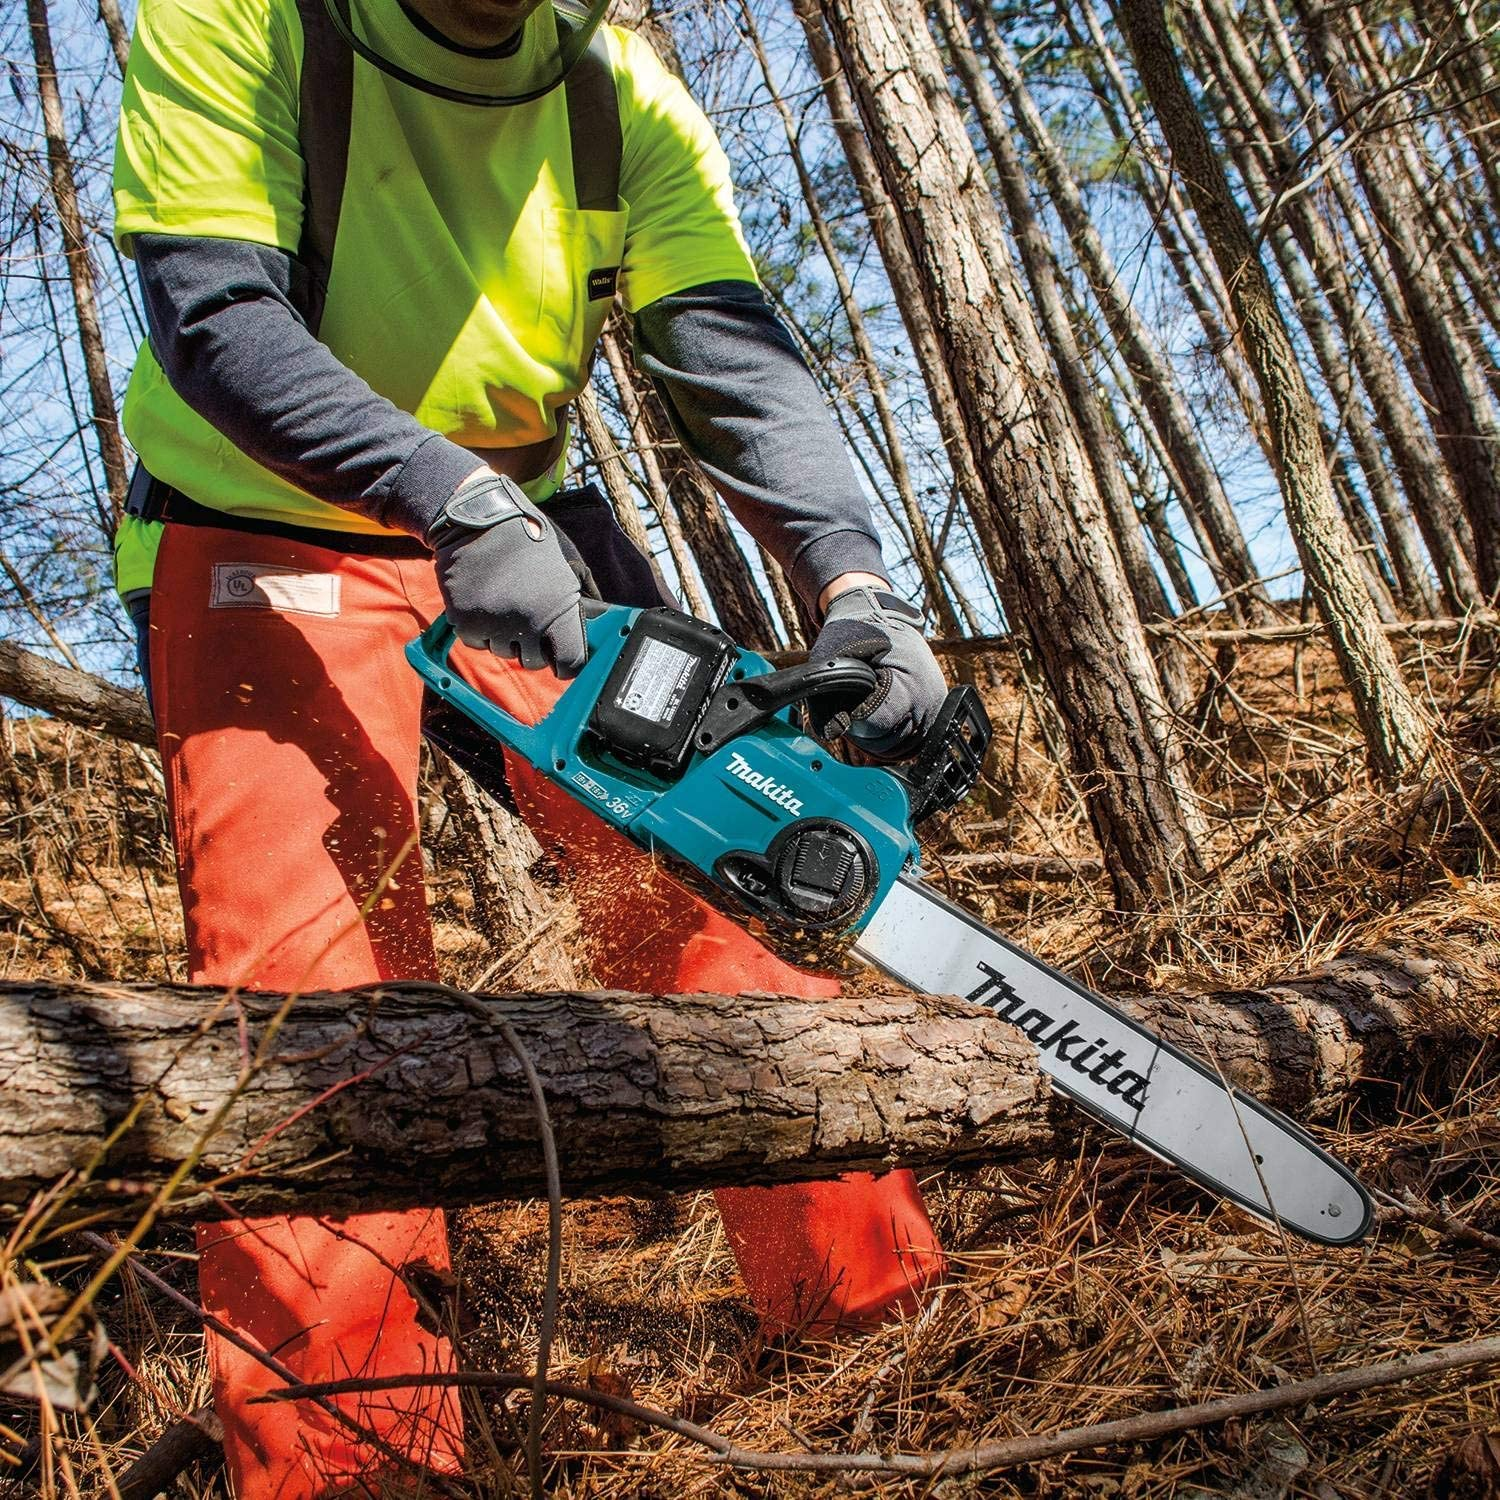 Best Cordless Chainsaw in 2021: Reviews & Buying Guide 7